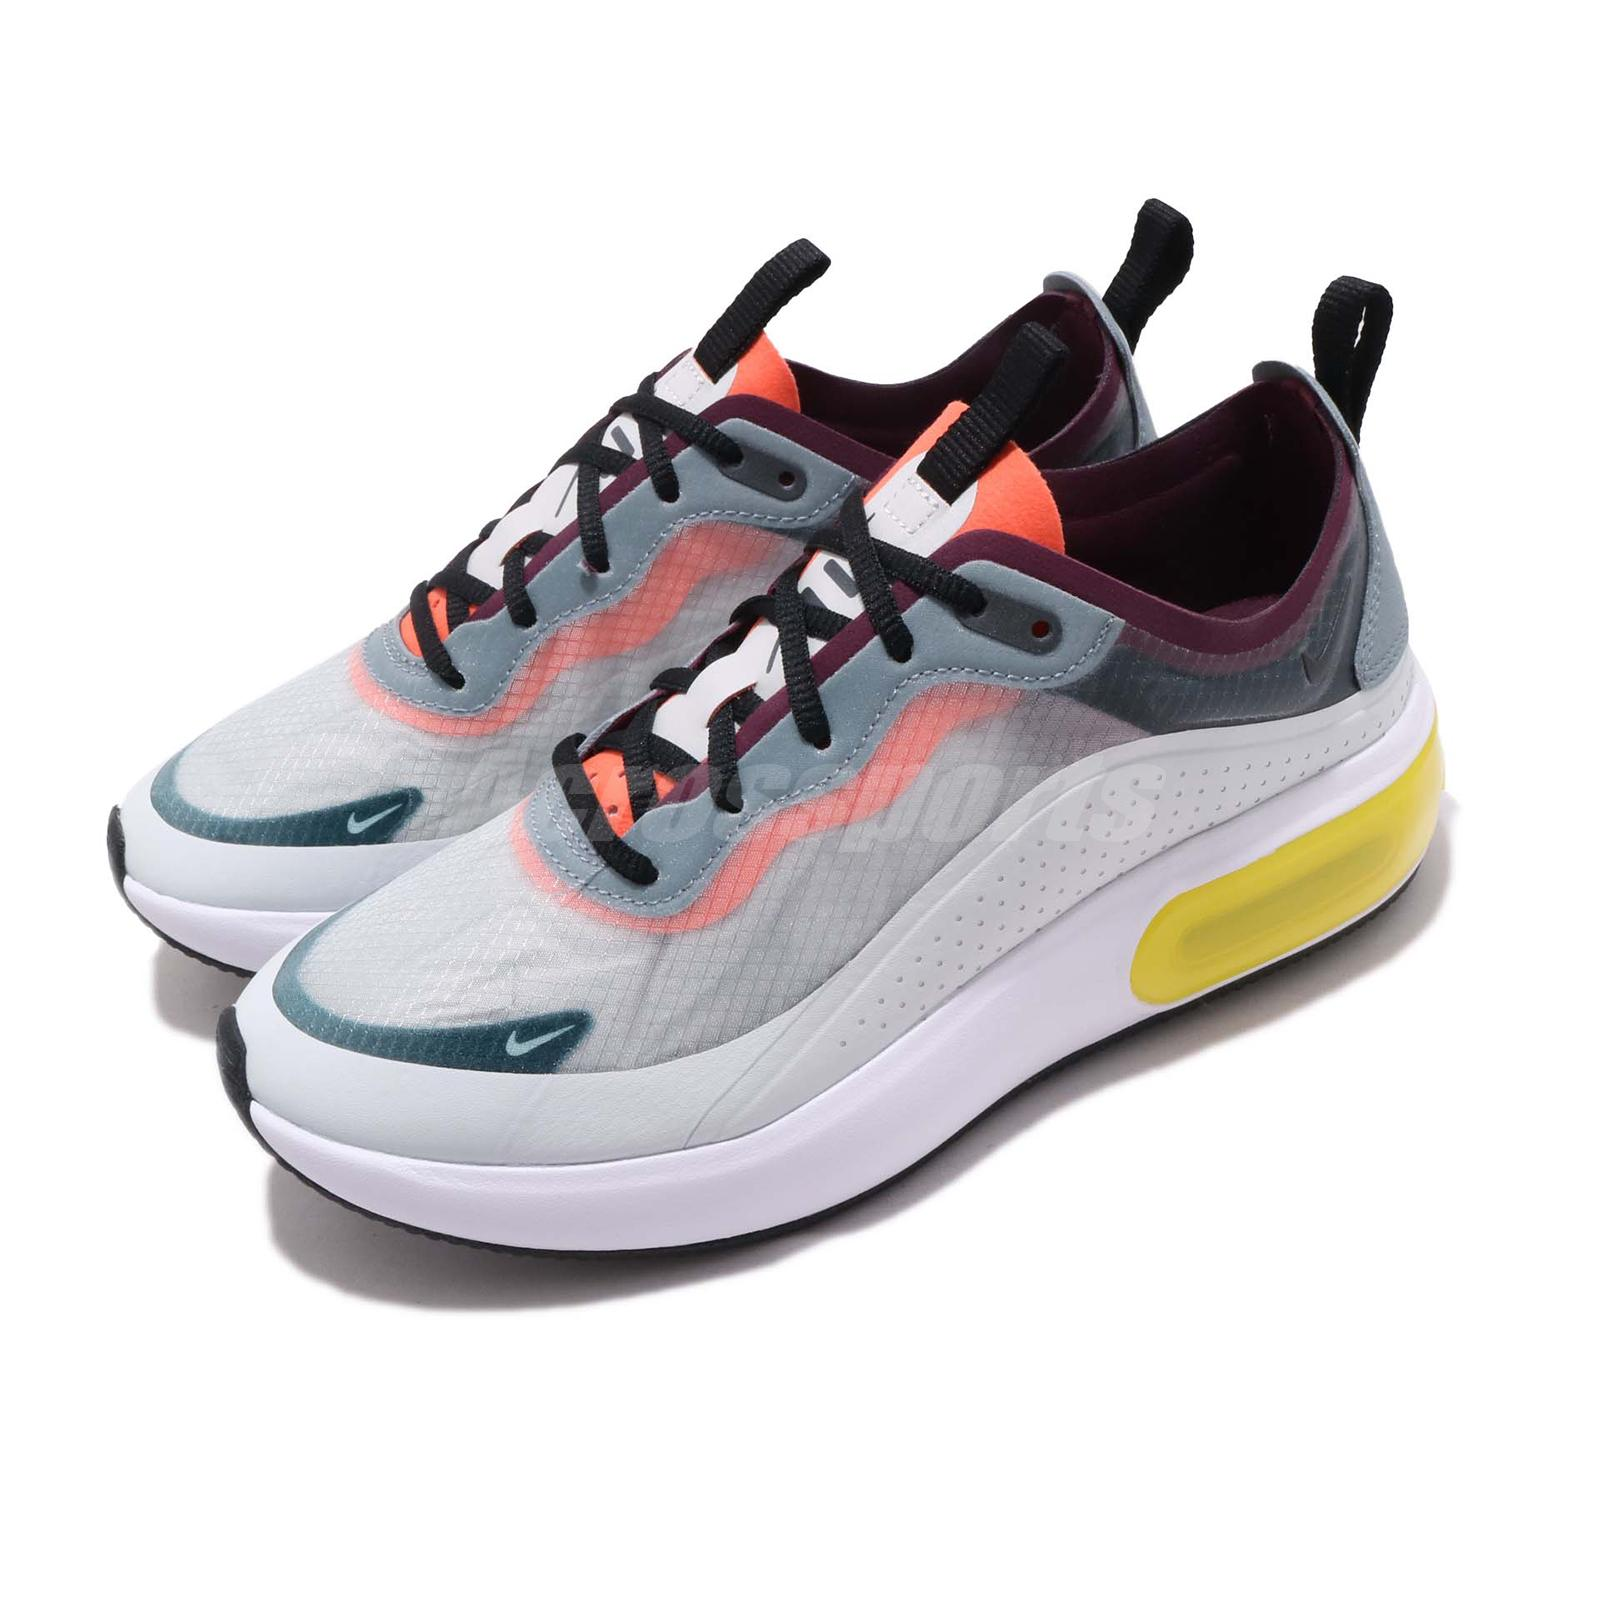 pick up 3dd6d 3d8d0 Details about Nike Wmns Air Max DIA SE QS Grey Yellow White Women Running  Shoes AV4146-001